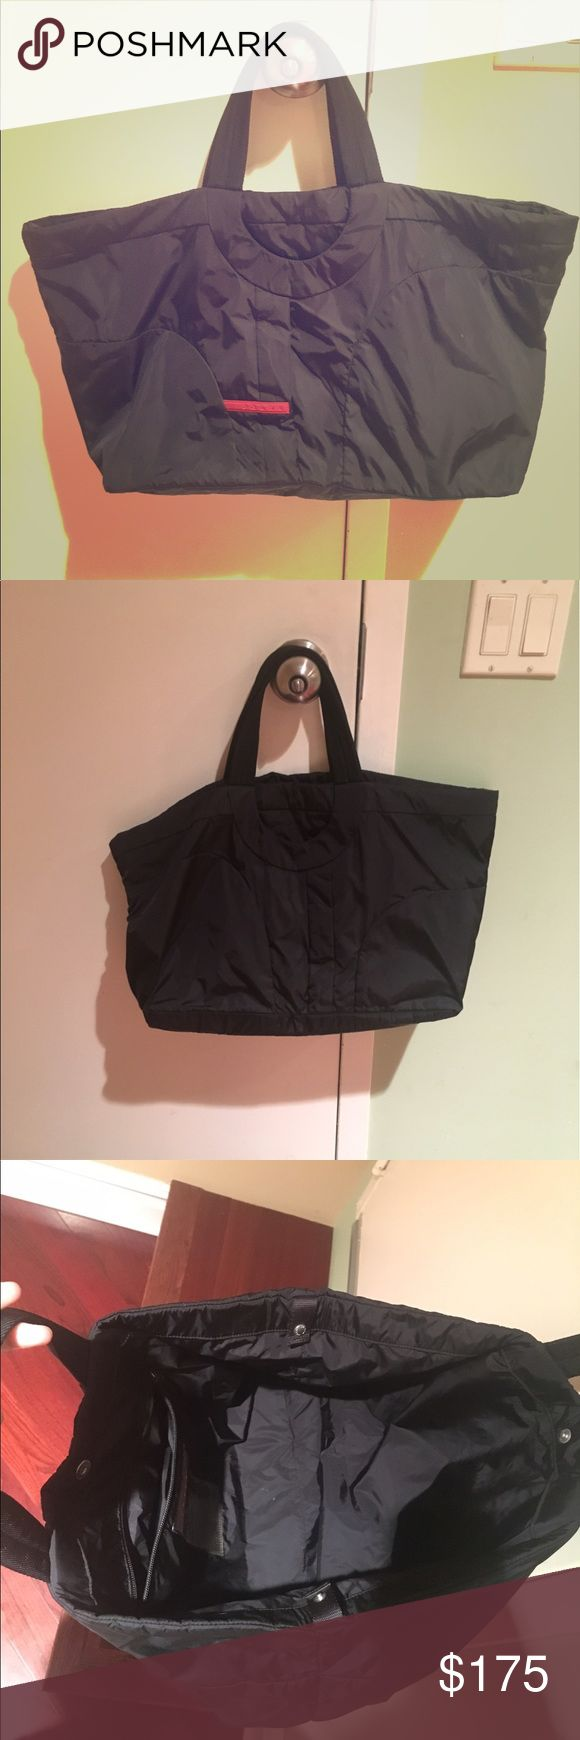 Authentic Prada Nylon Tote Bag Great condition, TONS of room in the bag, very spacious with one side pocket, 100% nylon, made in Italy. Offers accepted :) Prada Bags Totes